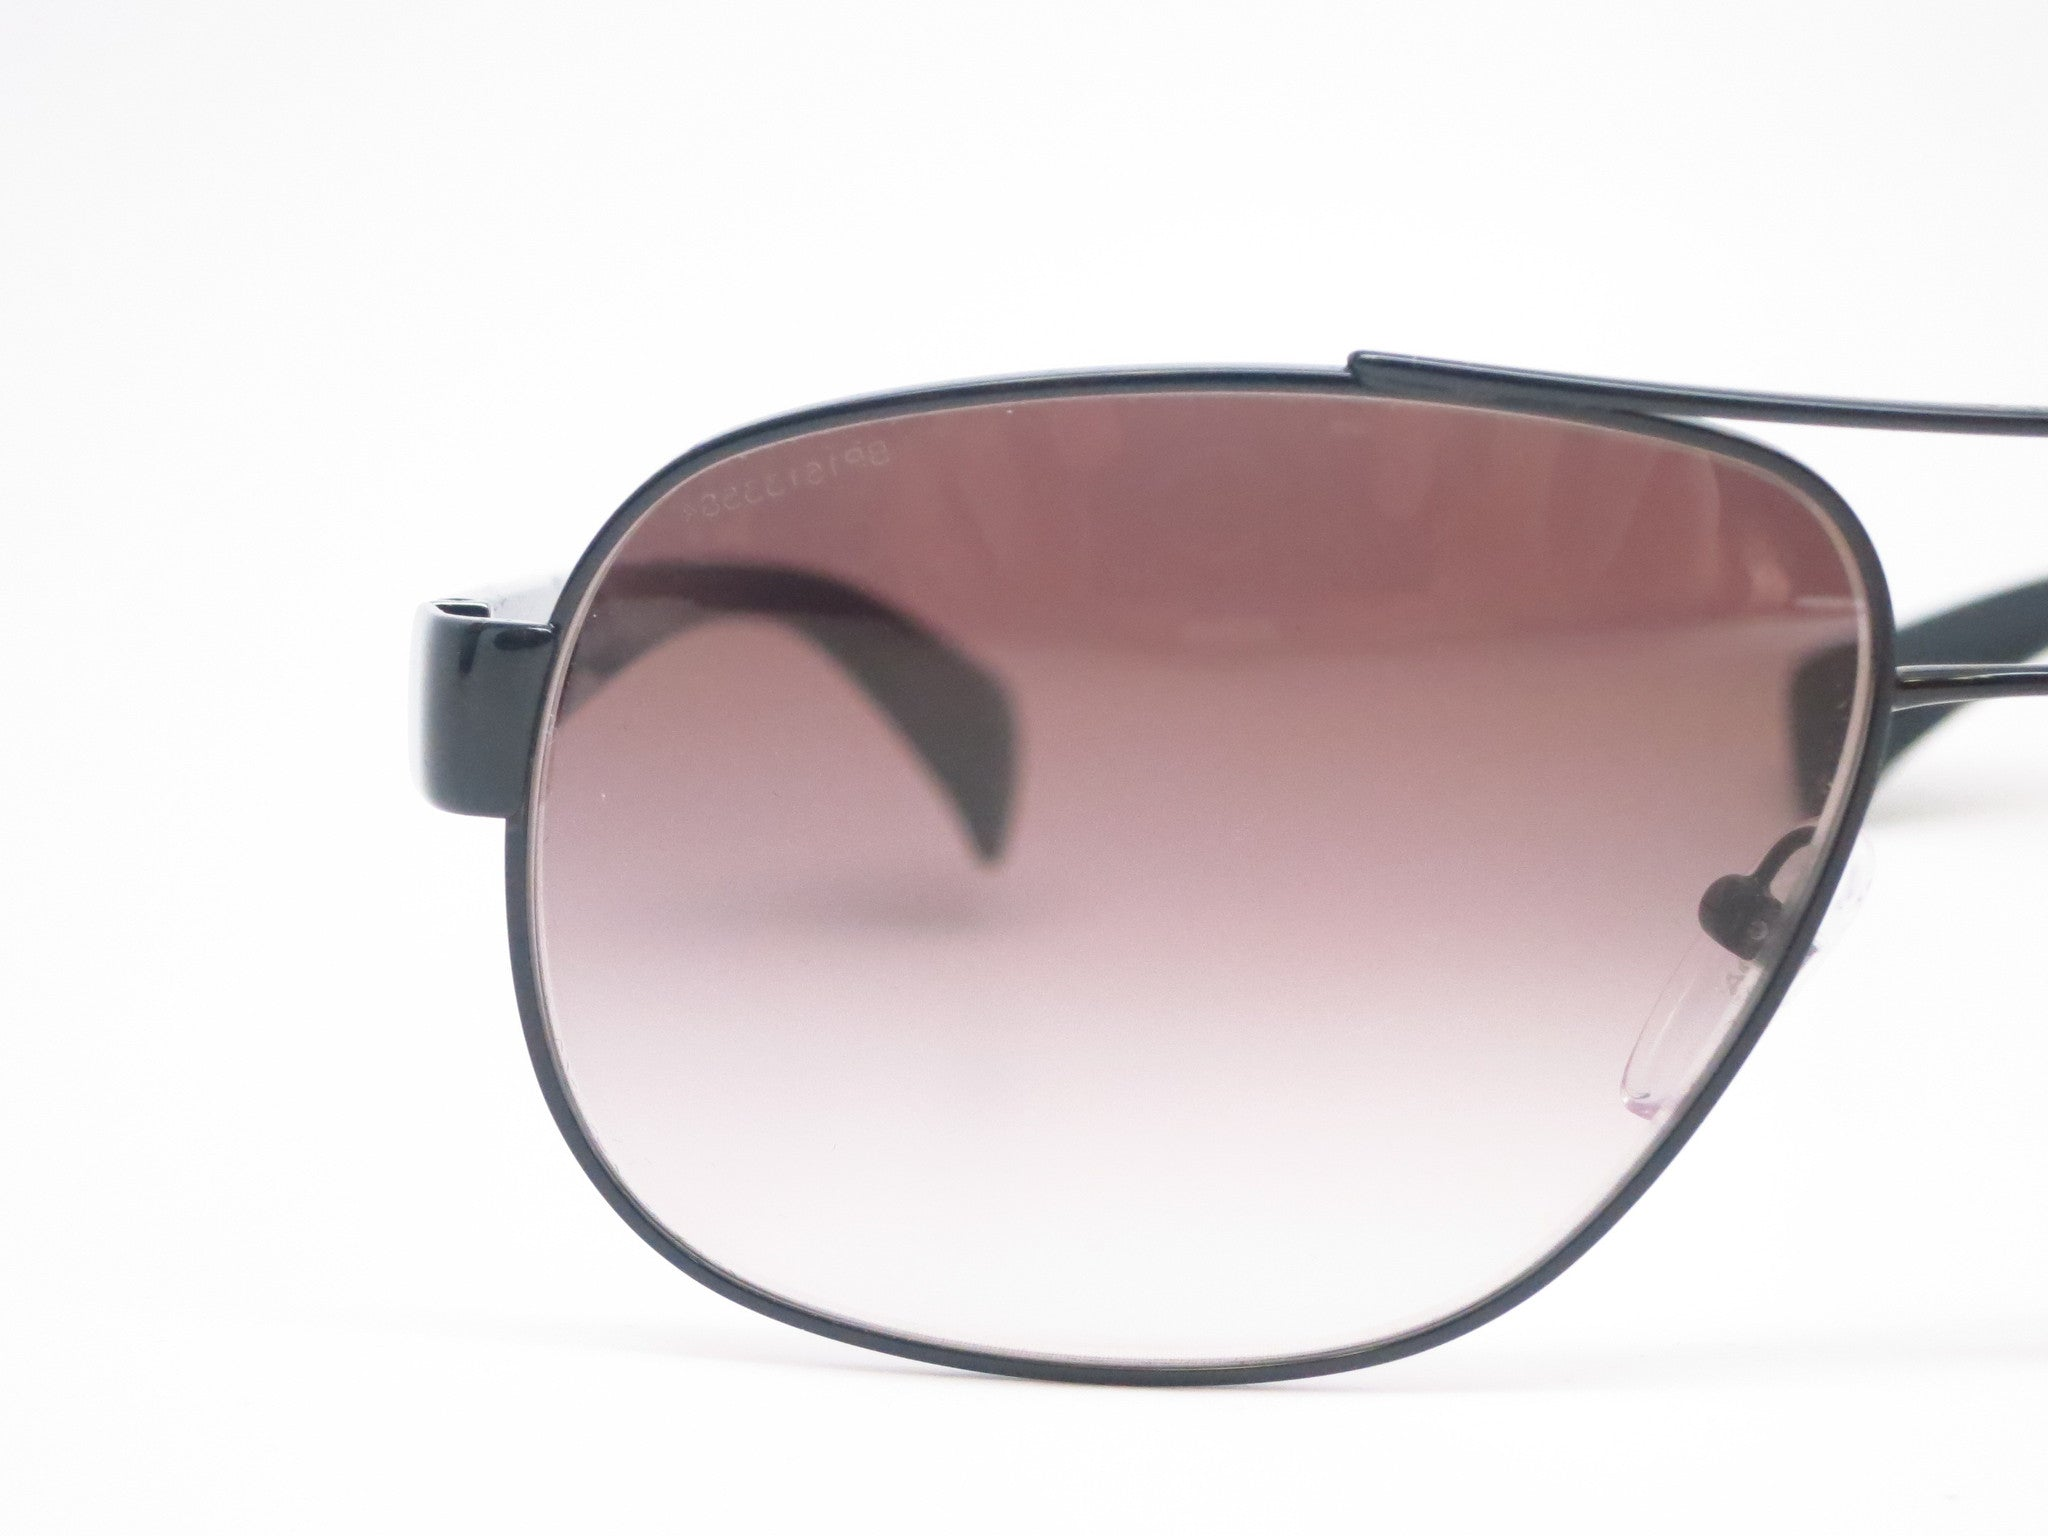 e005b6dc1b688 ... usa prada spr 52p 7ax 0a7 black sunglasses eye heart shades prada  sunglasses d785c 32930